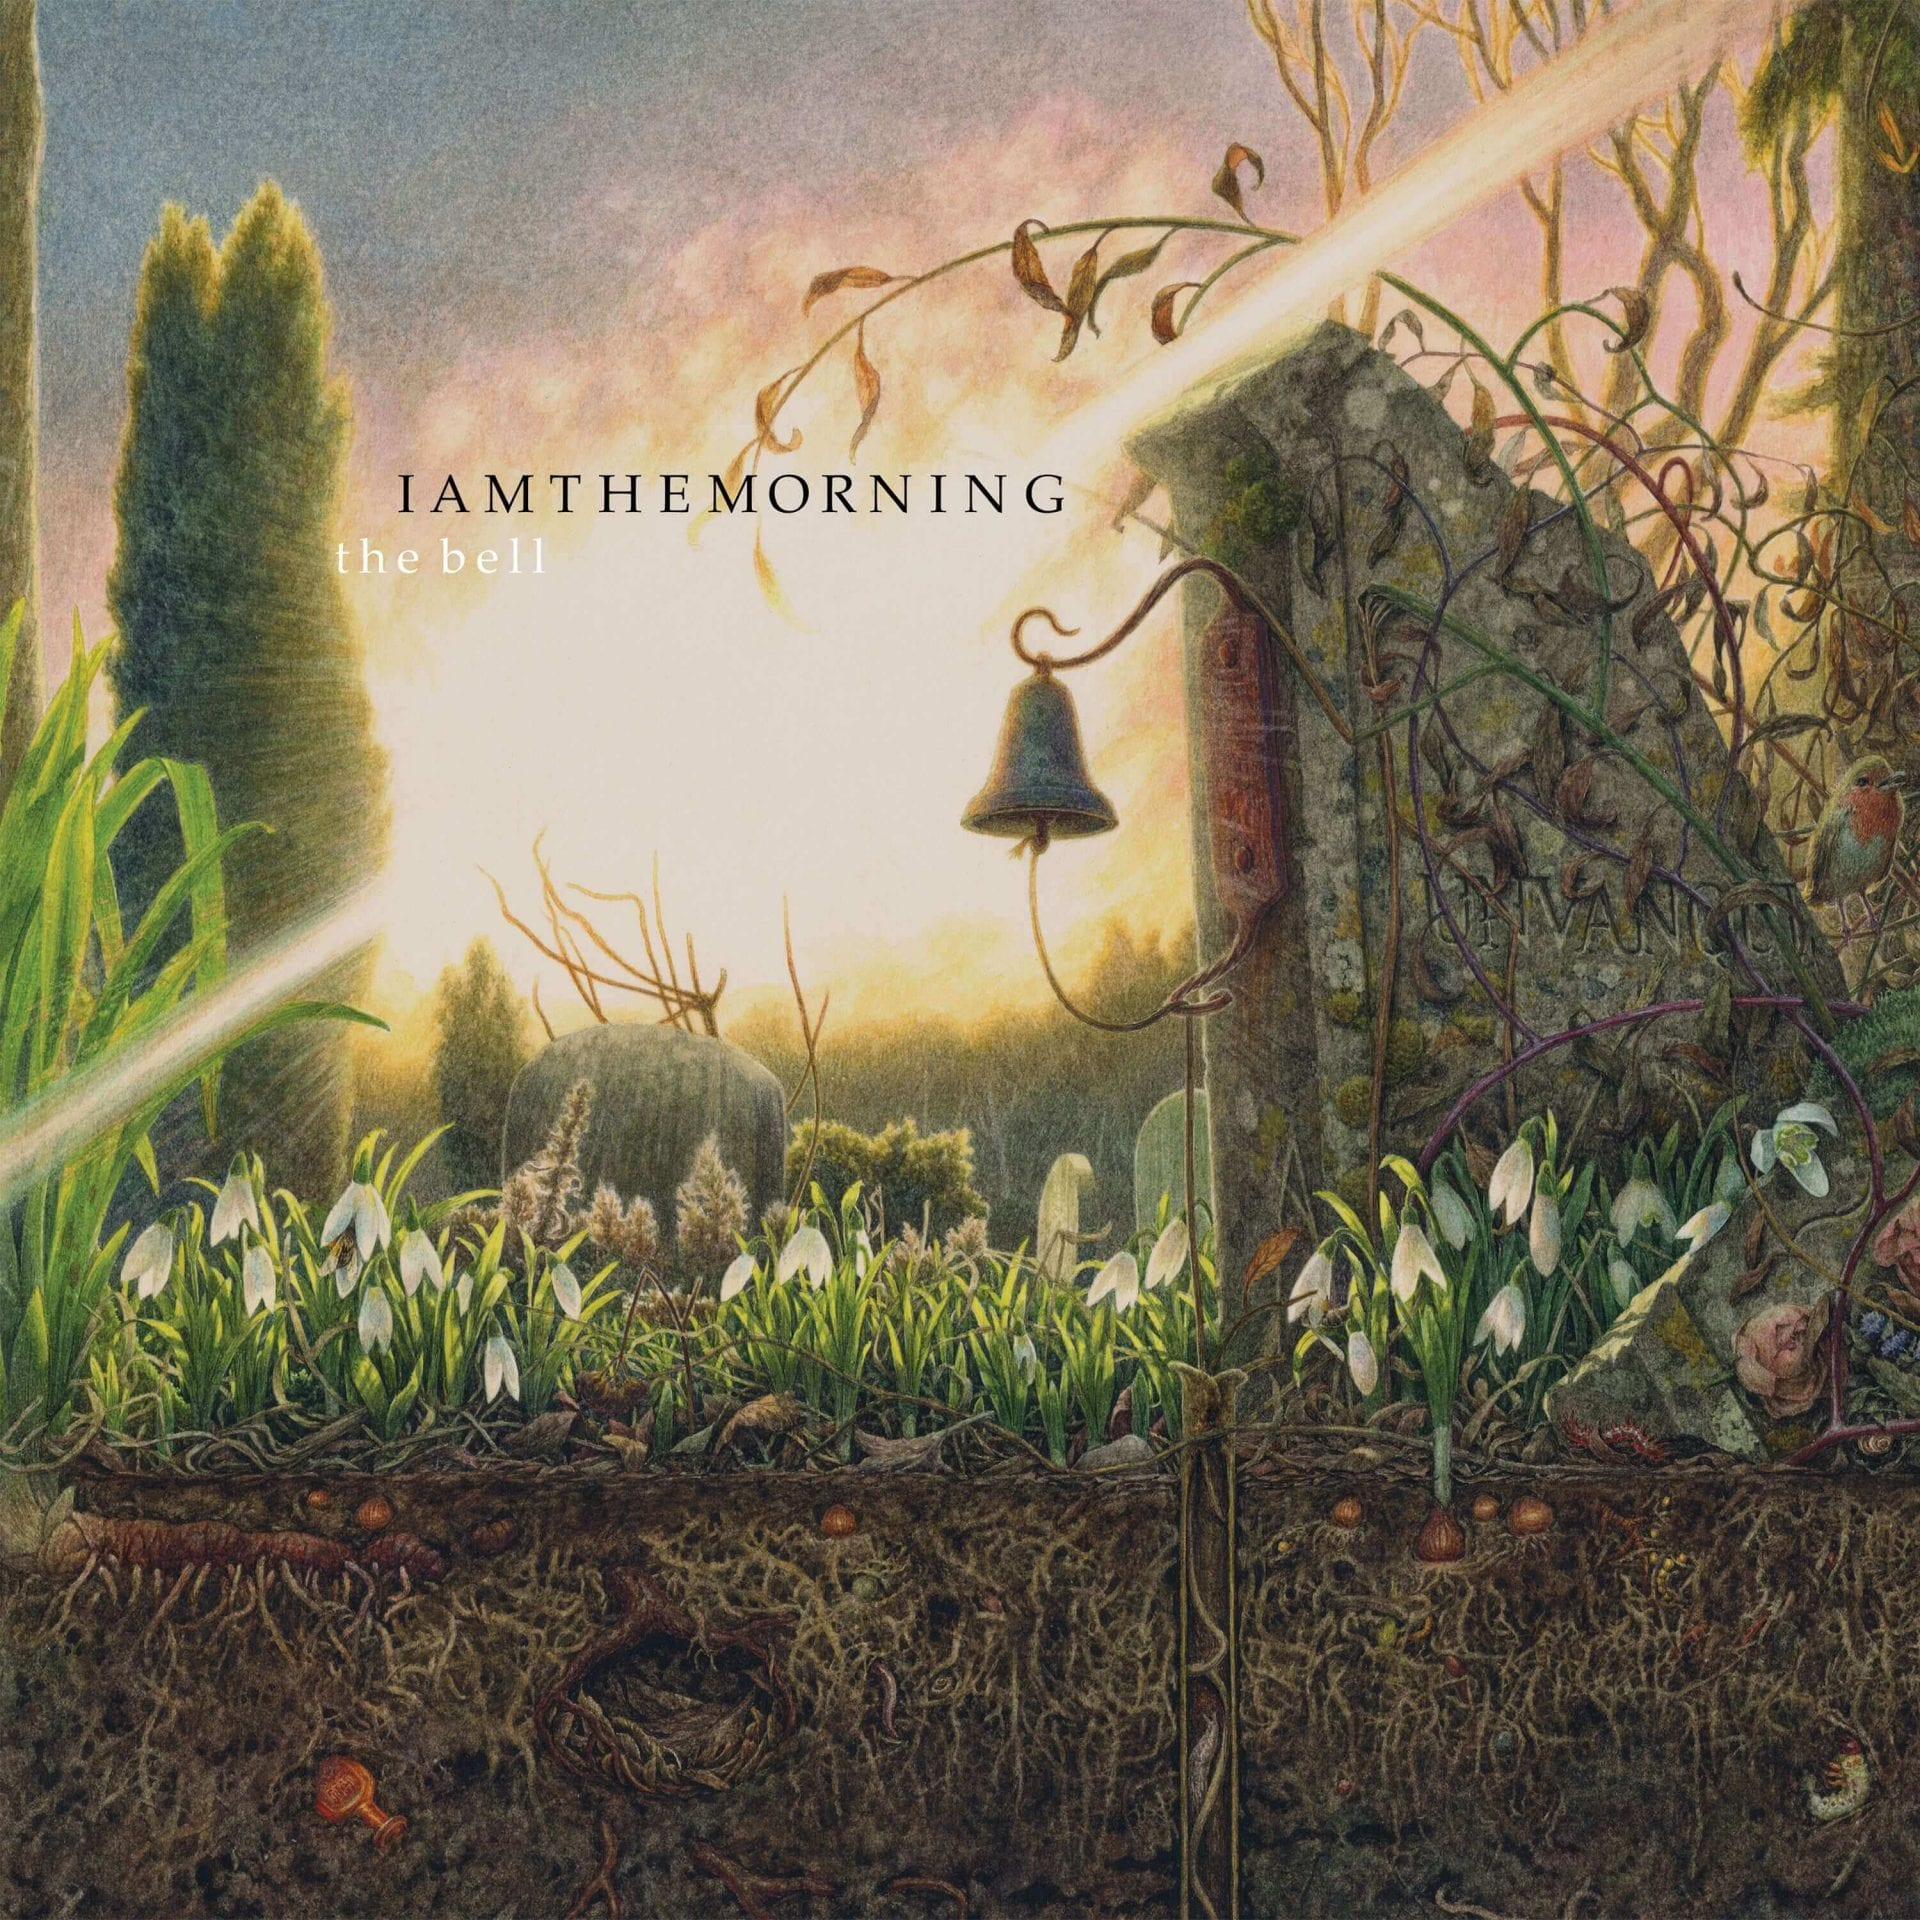 Iamthemorning – The Bell